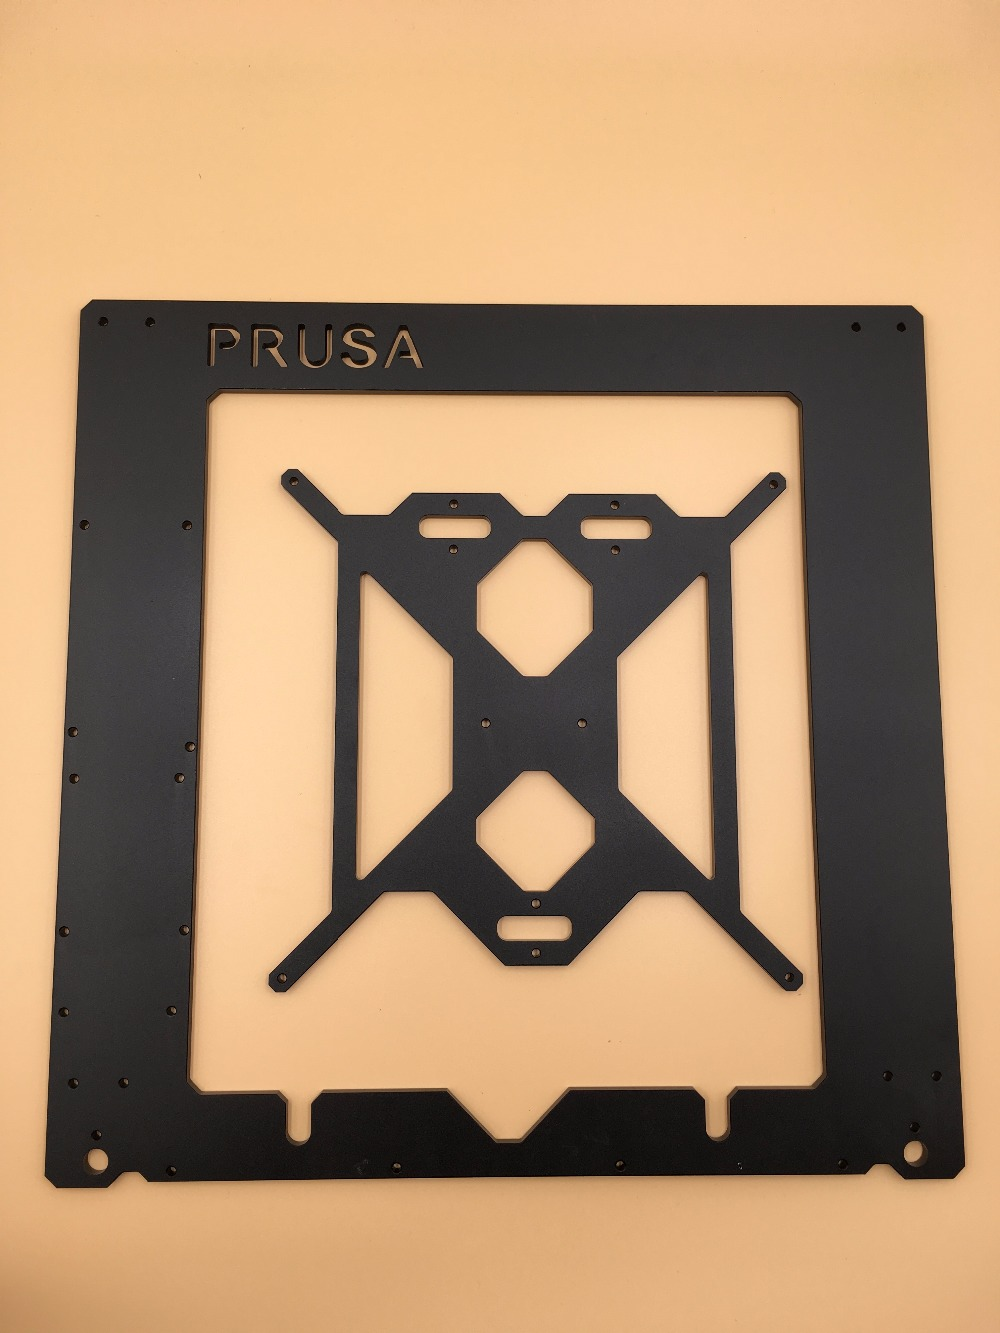 Prusa i3 Rework 3D printer aluminum frame kit RepRap Prusa i3 aluminum frame 3D Printer DIY 6 mm 2016 upgrade free shipping 3d printer high precision reprap prusa i3 220 220 240mm 3d printer diy kit 0 5kg filament 8g sd card